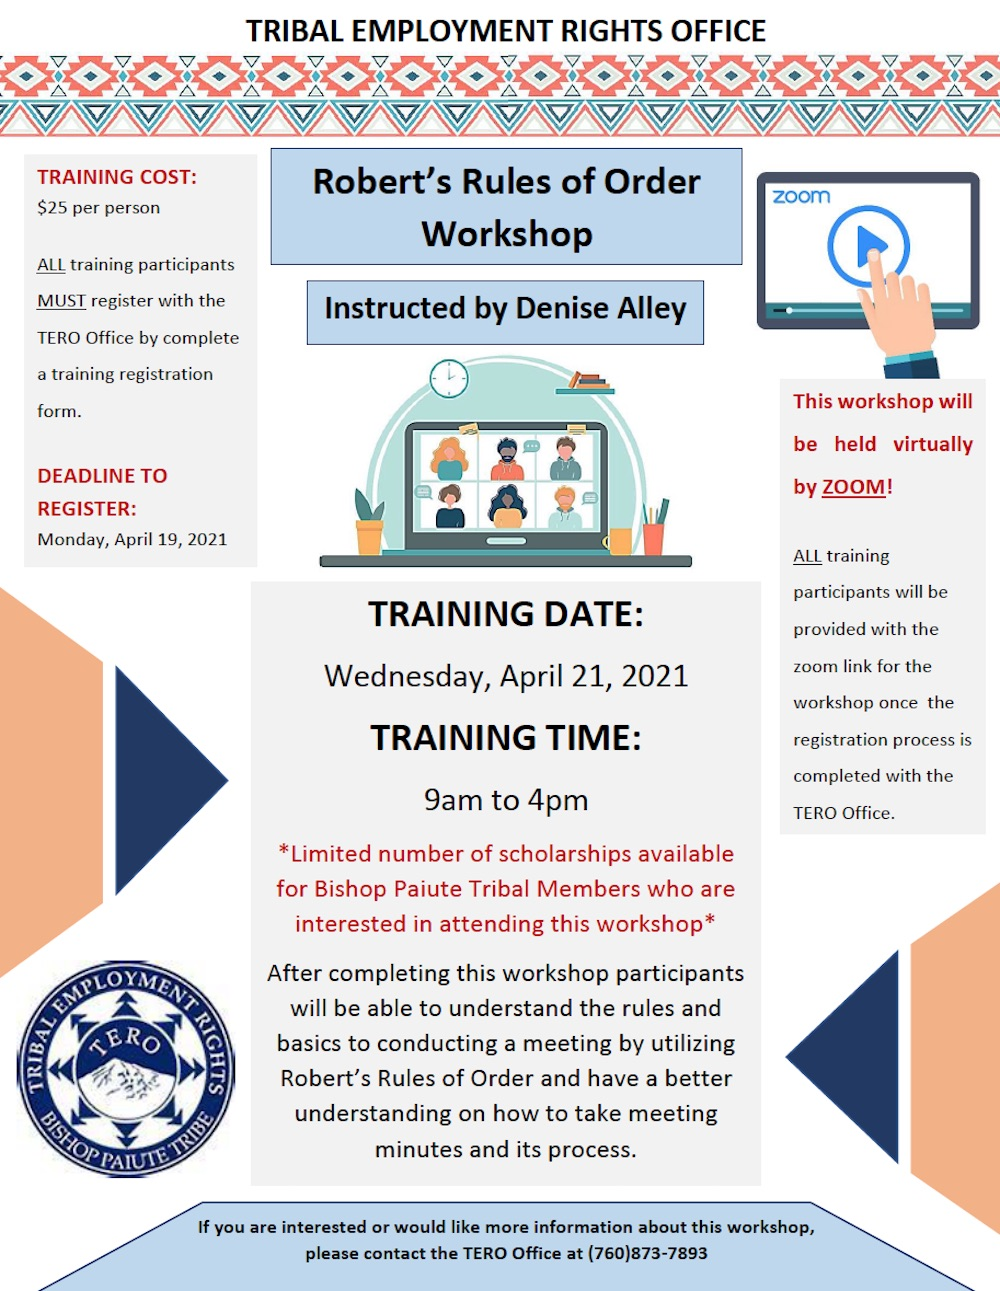 roberts rules of order workshop